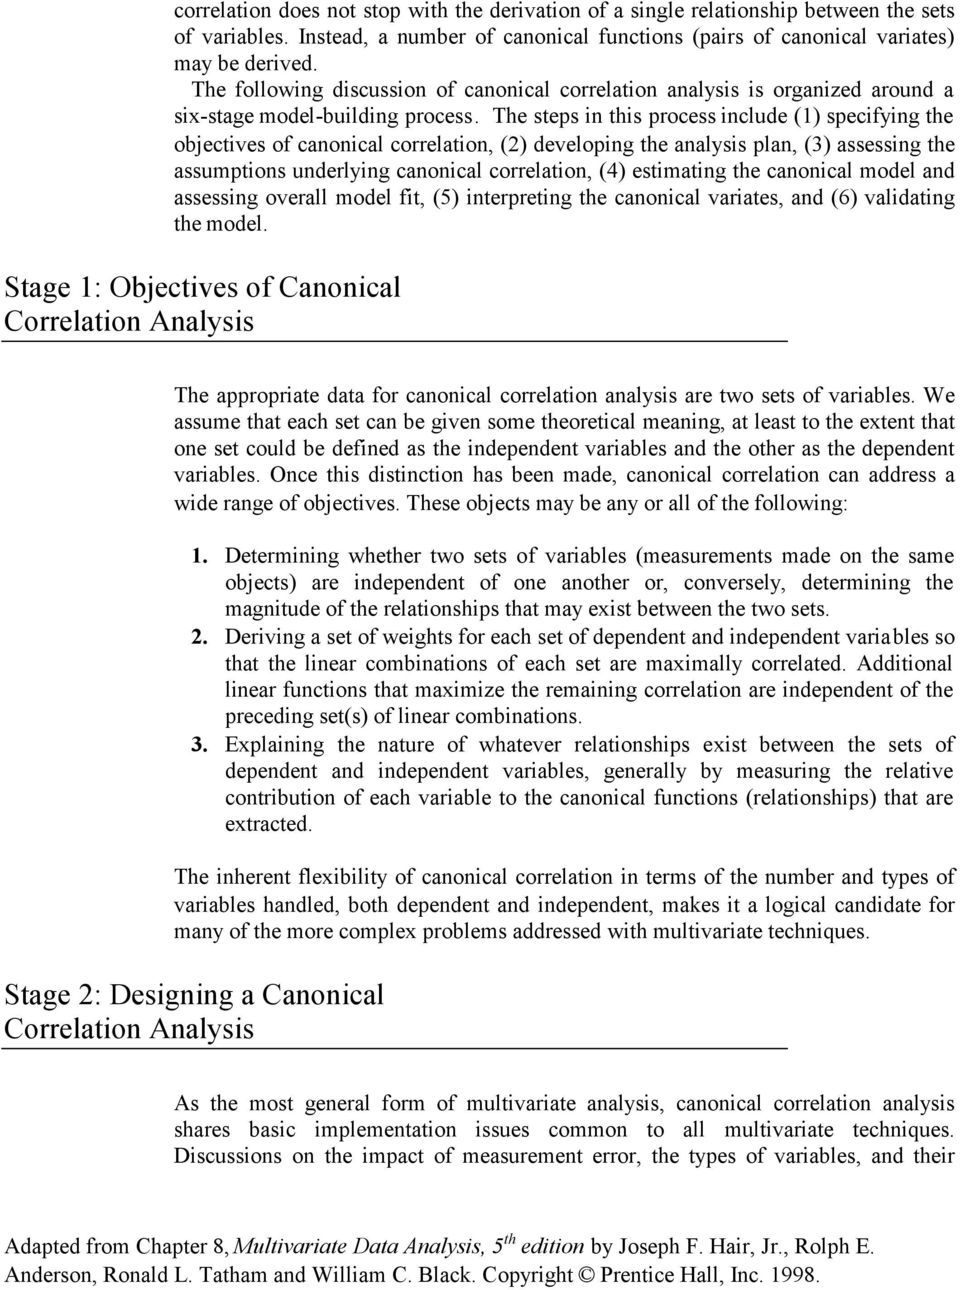 The steps in this process include (1) specifying the objectives of canonical correlation, (2) developing the analysis plan, (3) assessing the assumptions underlying canonical correlation, (4)